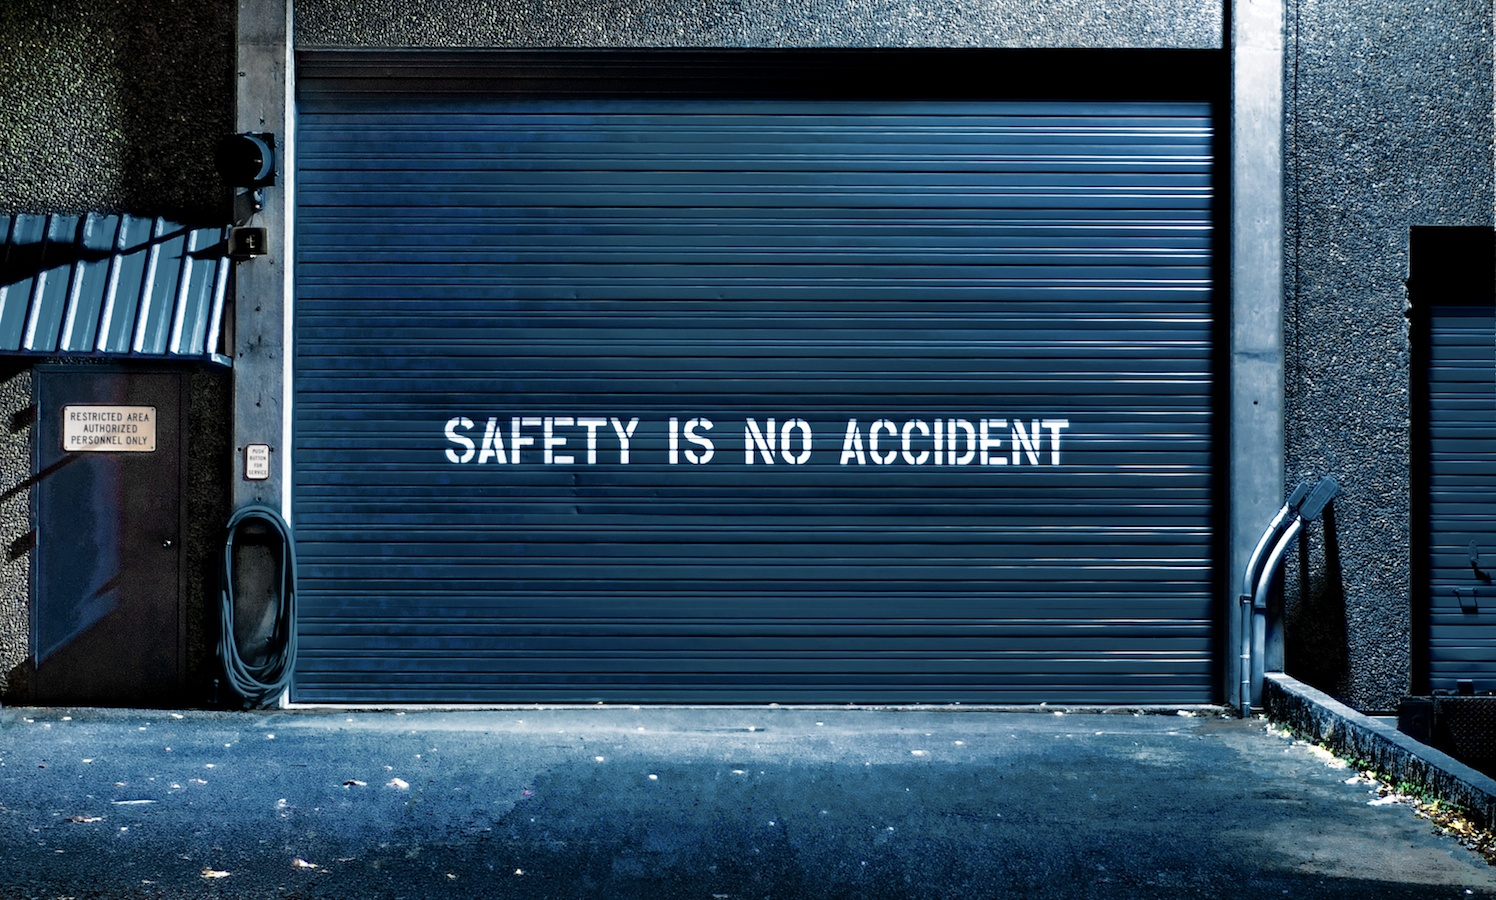 As a little bonus on the way home I snagged this grungy industrial setting... Safety Is No Accident!